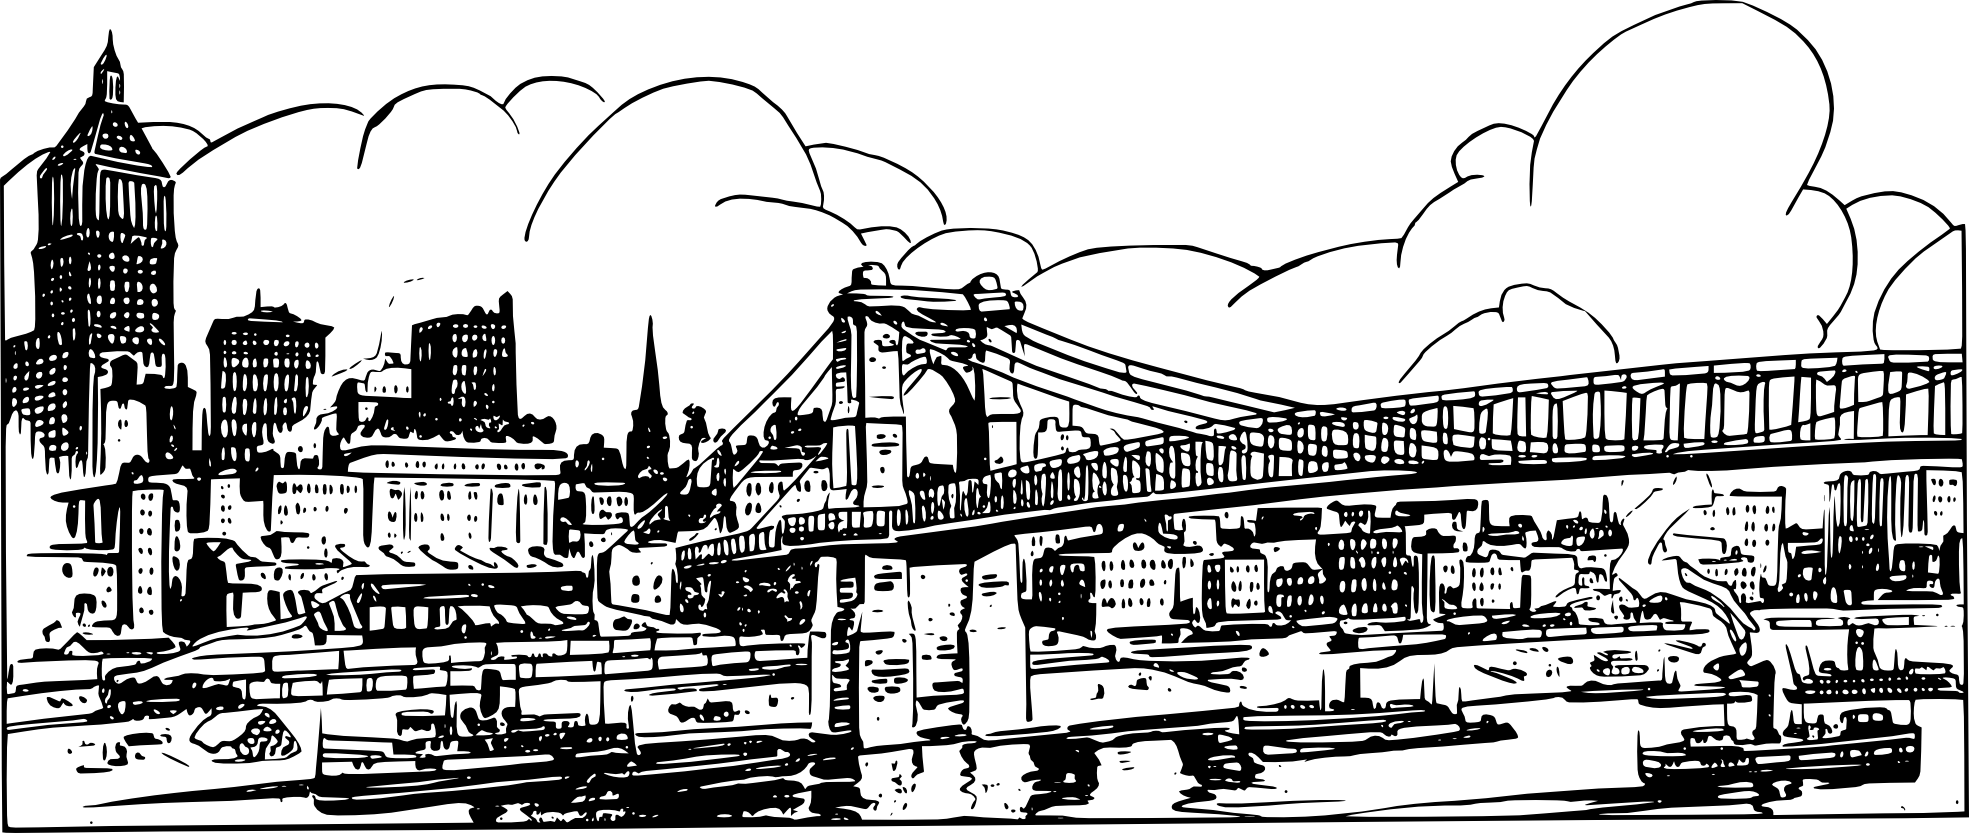 City Skyline Coloring Page